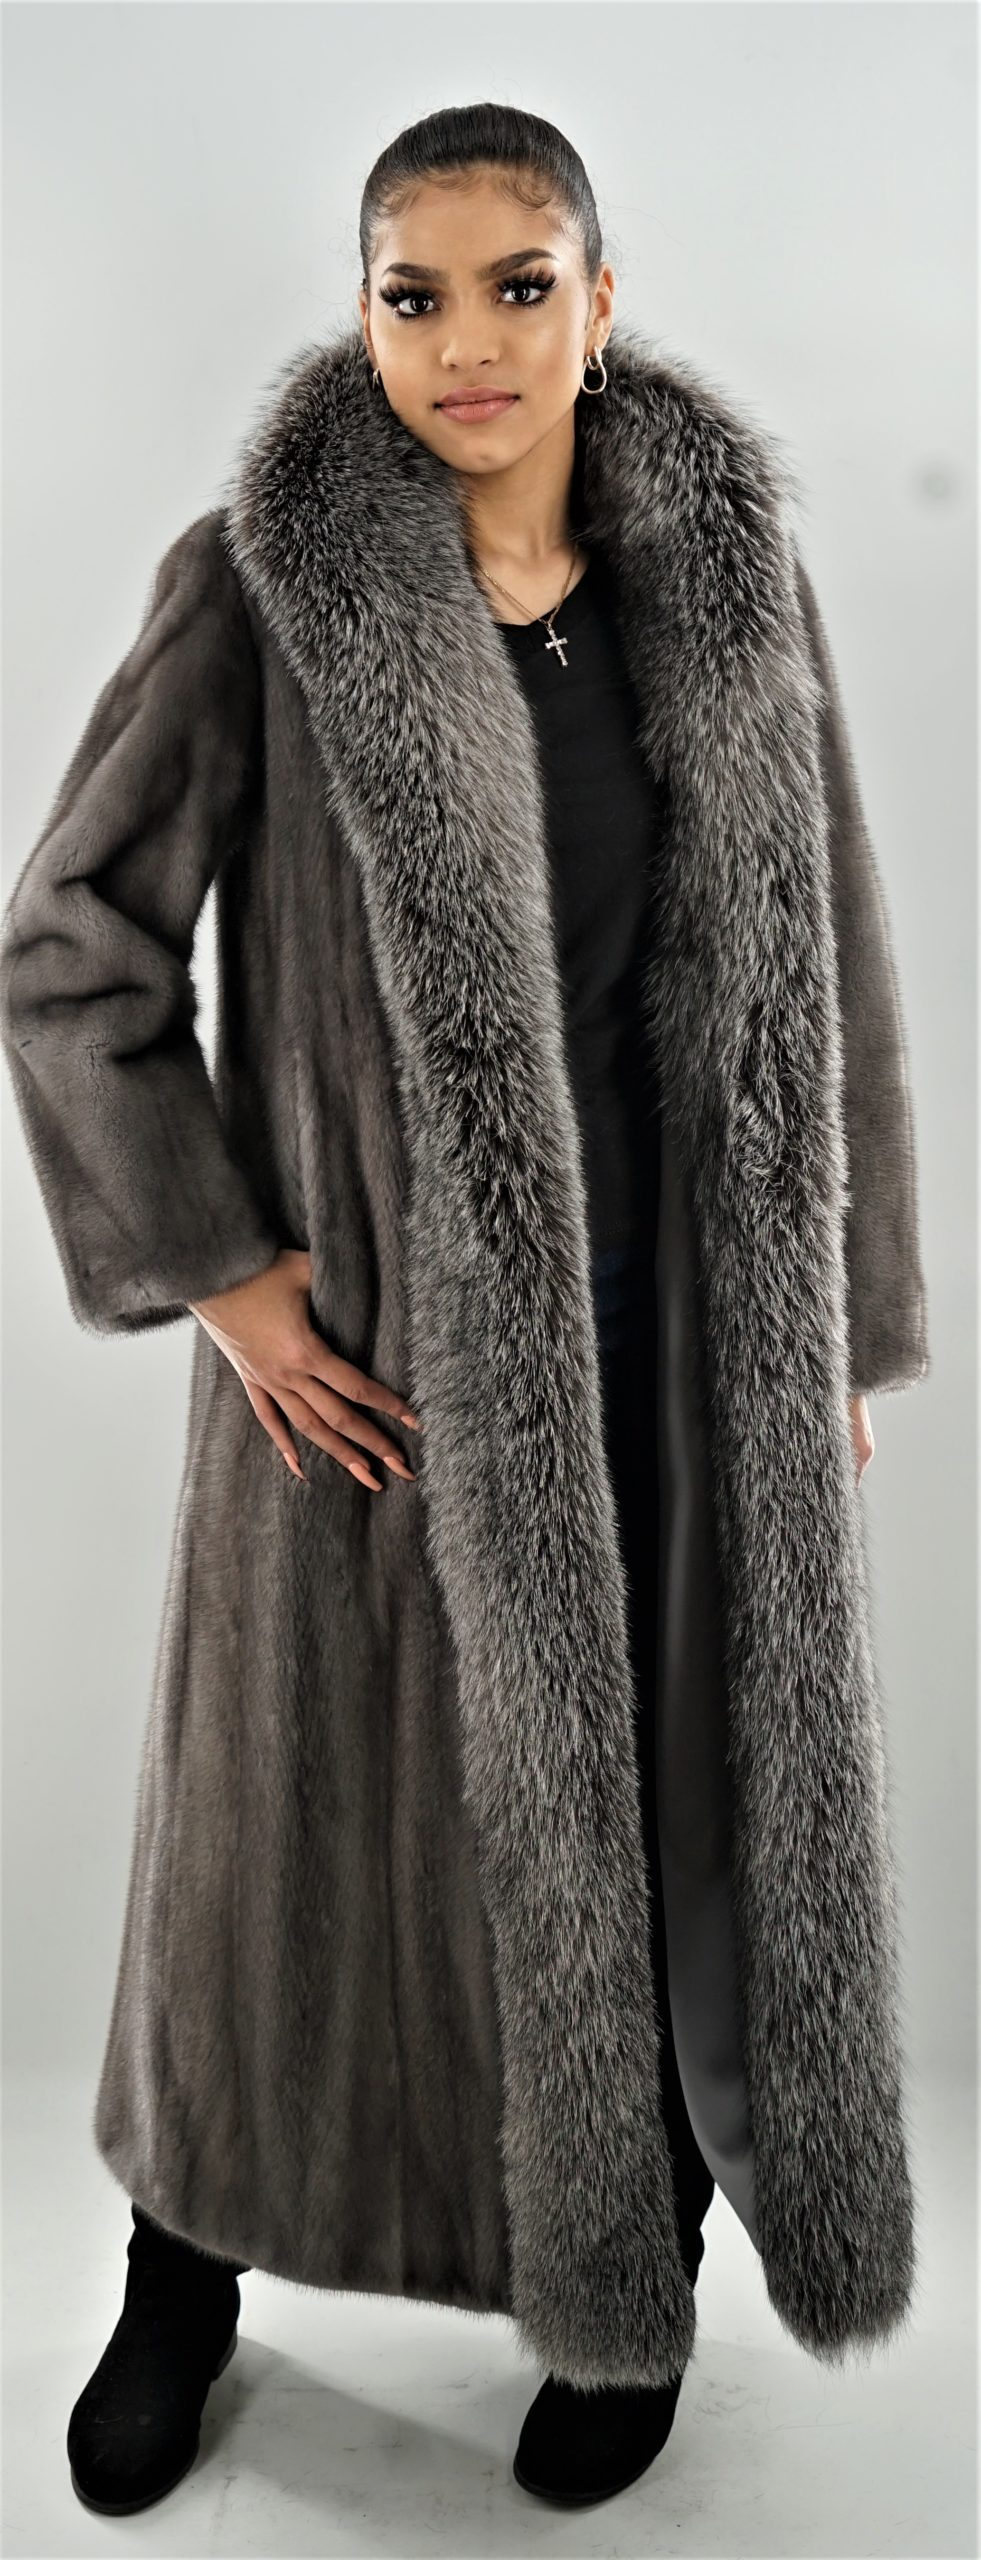 Blue Iris Mink Coat Indigo Fox Fronts